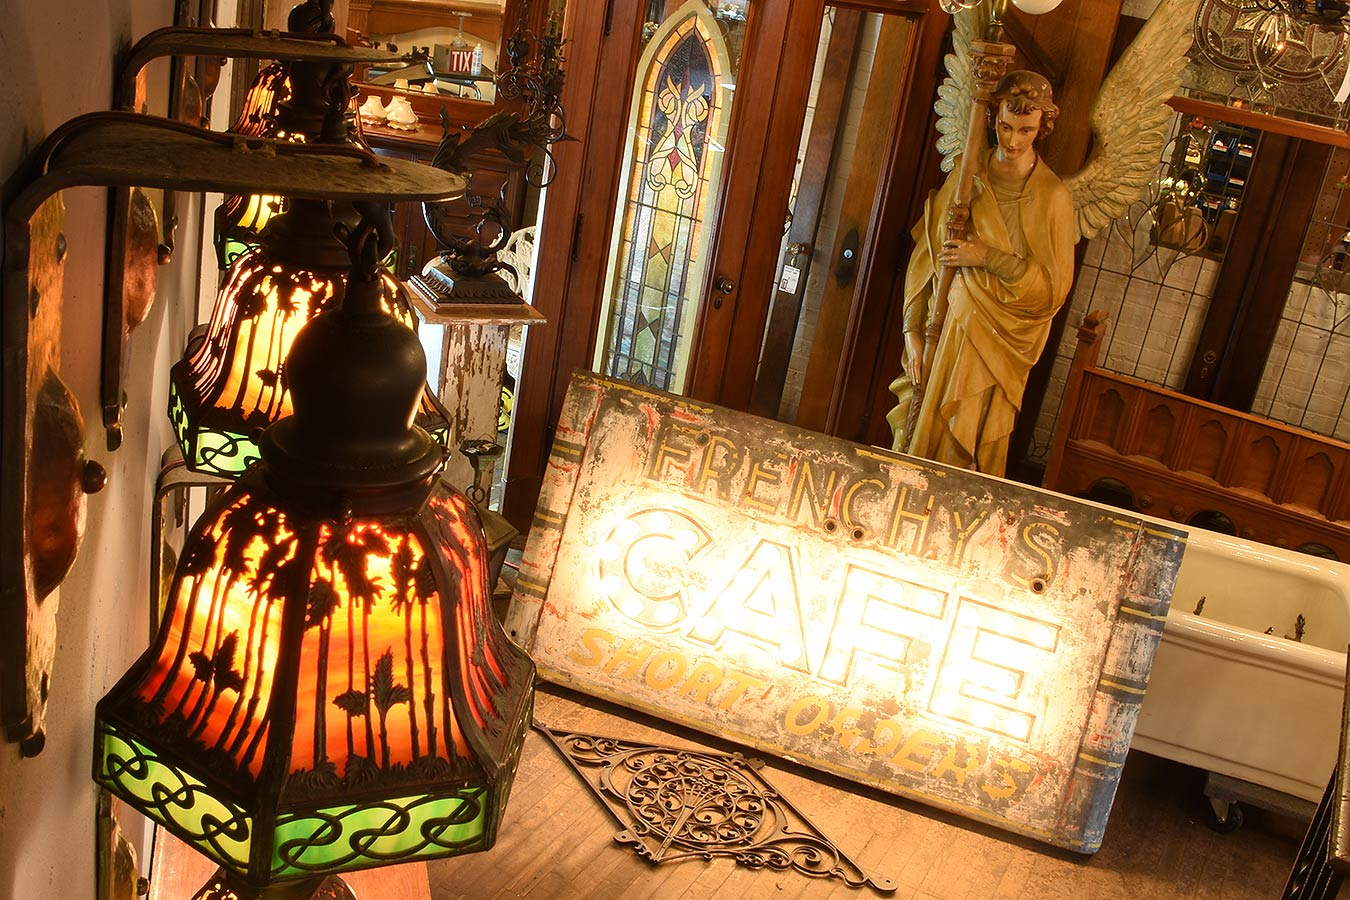 store-october-6.jpg - ARCHITECTURAL ANTIQUES